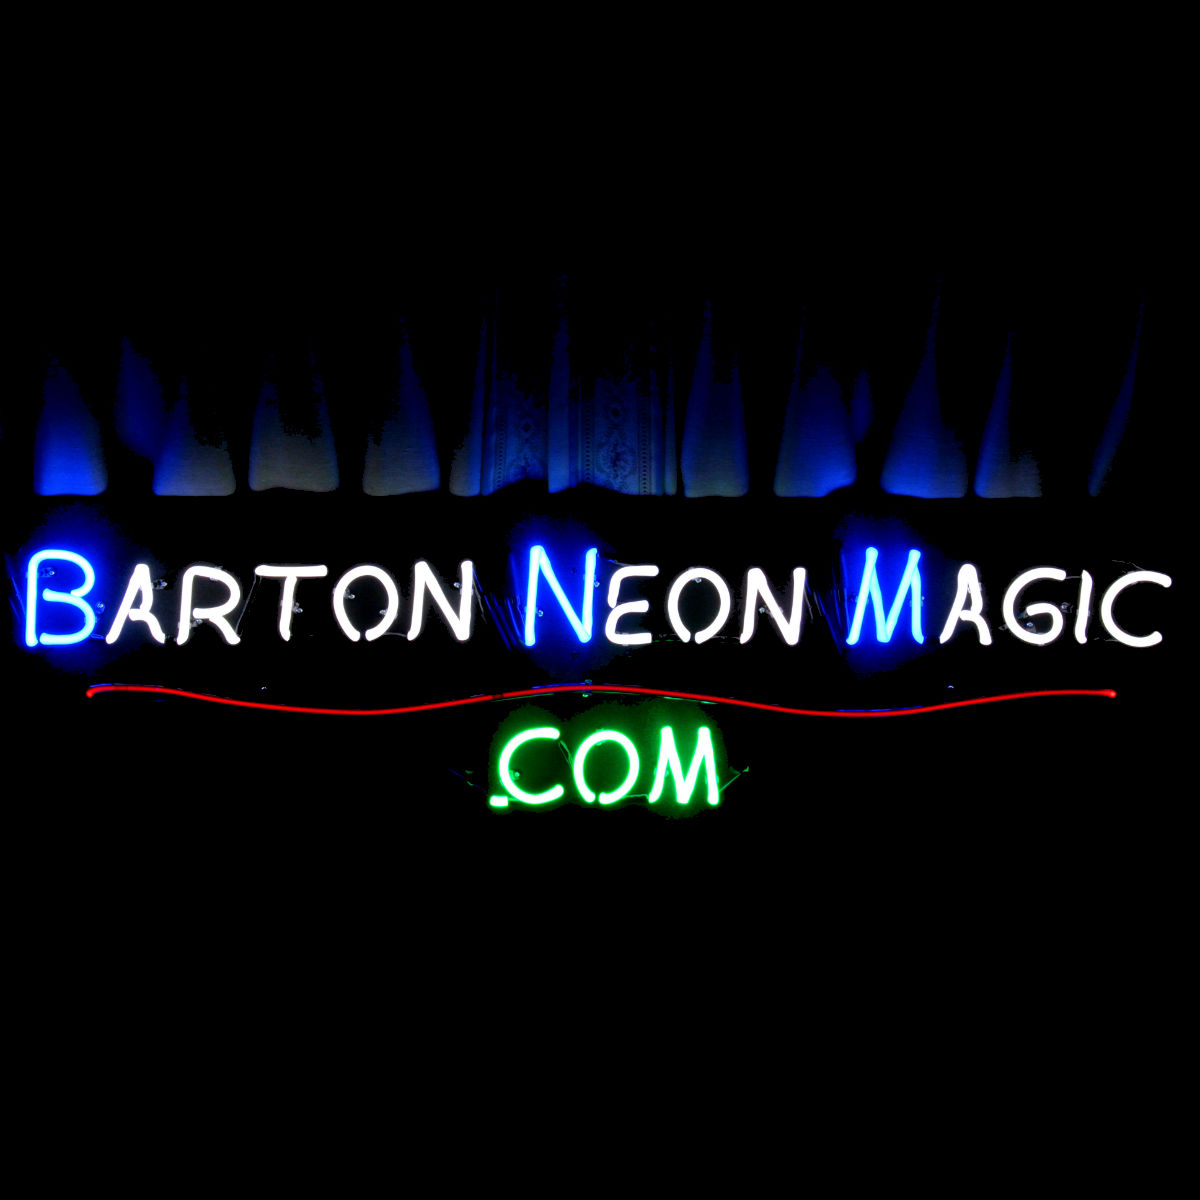 GIFT IDEA -  BRILLIANT CUSTOM NEON LIGHT SCULPTURES by John Barton - Famous USA Neon Glass Artist - BartonNeonMagic.com